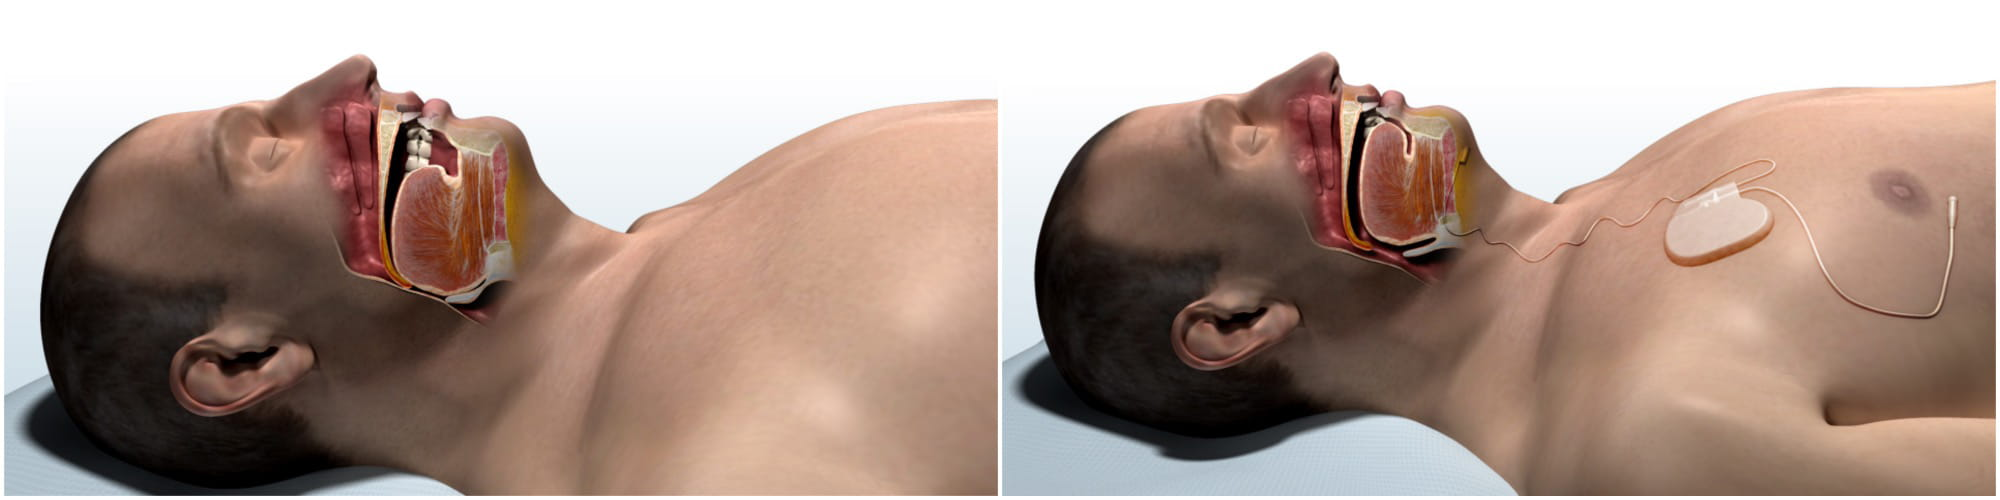 computer generated drawings of the anatomy of a man's throat and mouth during sleep